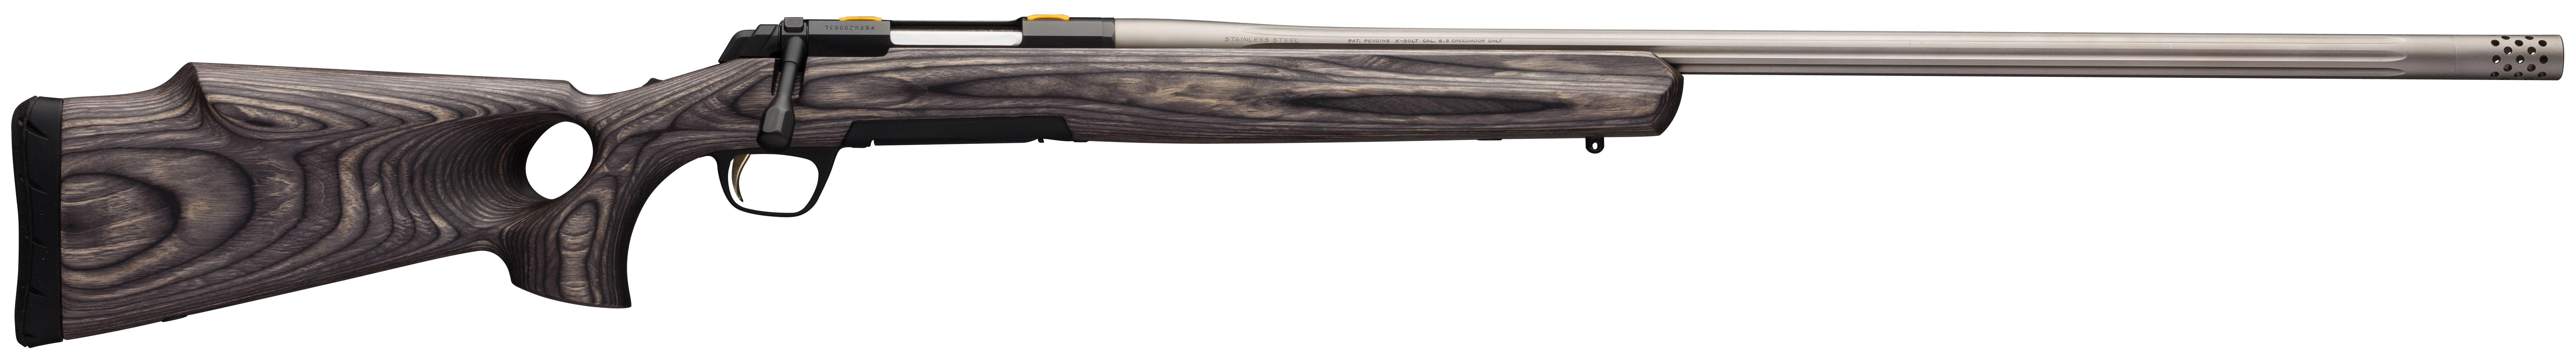 BROWNING X BOLT ECLIPSE TARGET HUNTER 308 WIN BOLT ACTION RIFLE